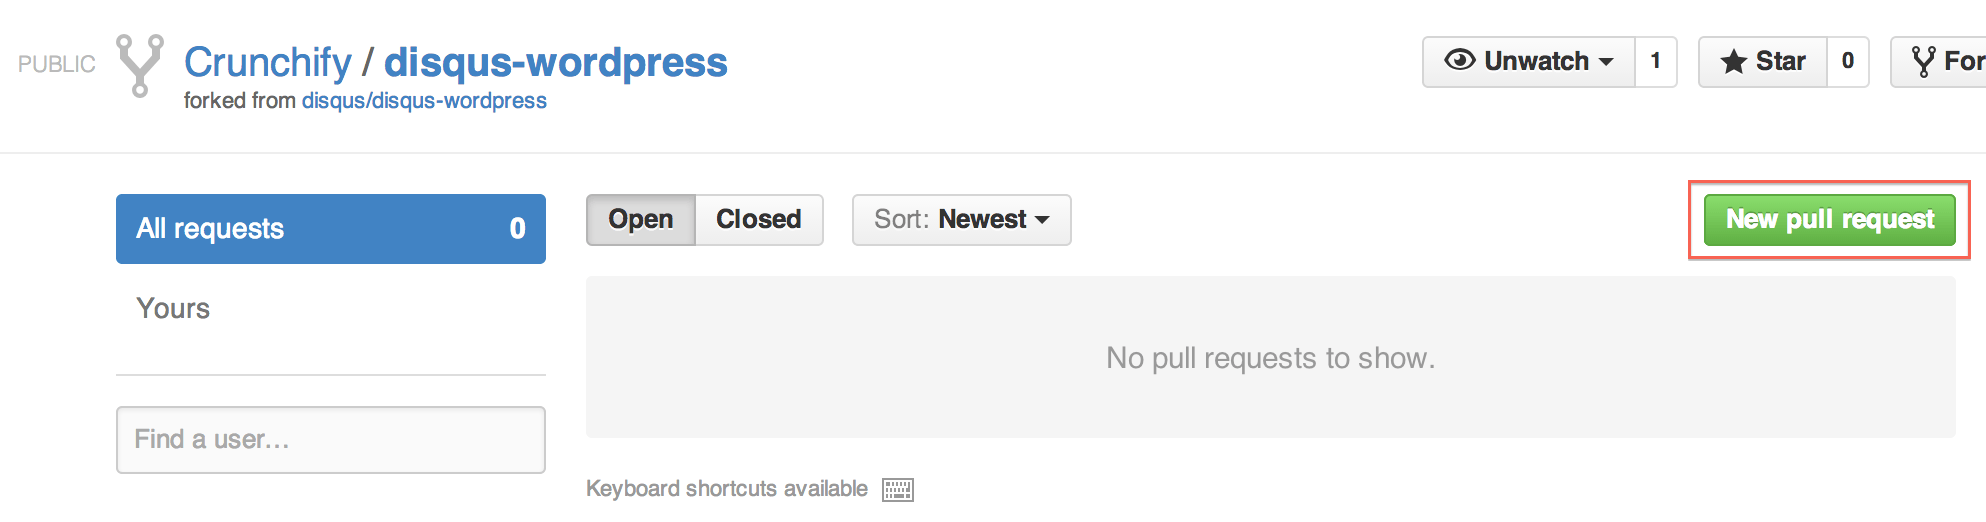 Create New Pull Request Github